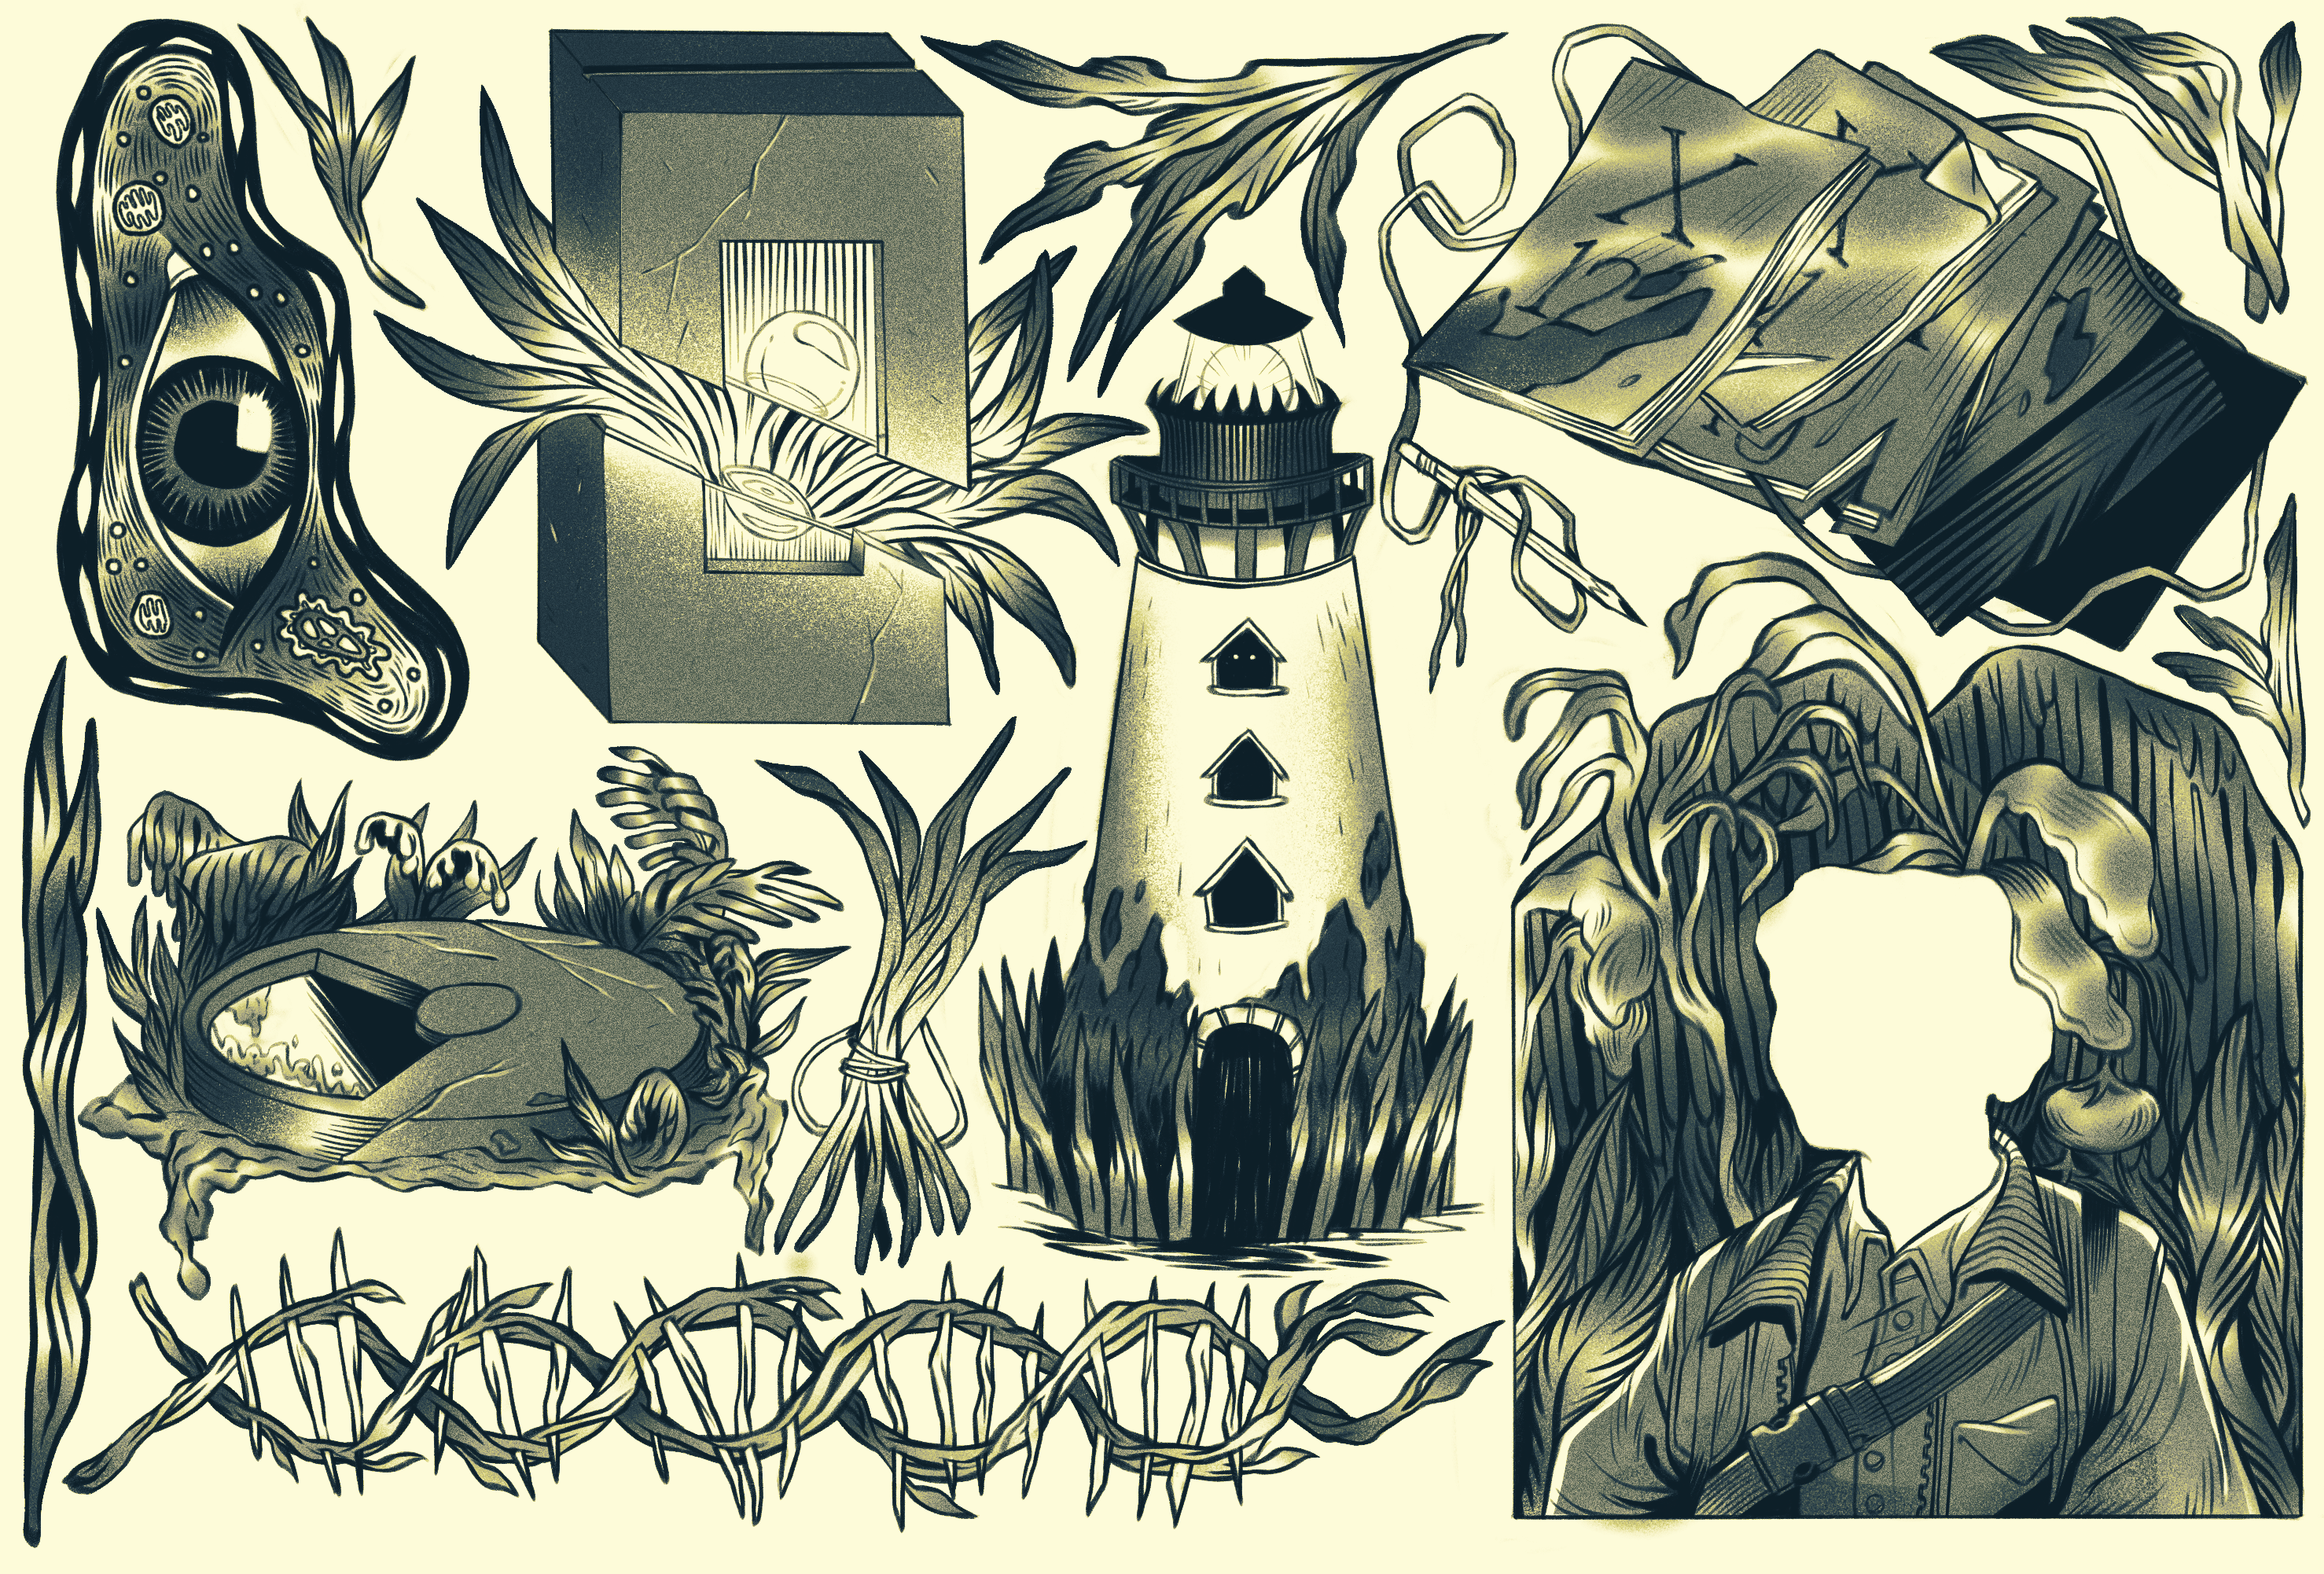 A tattoo flash sheet depicting various symbols and images from the book Annihilation by Jeff Vandermeer. Images include an eye within an amoeba, the box given to assess danger, the field journals, the tunnel, the lighthouse, a DNA strand made of plants, a